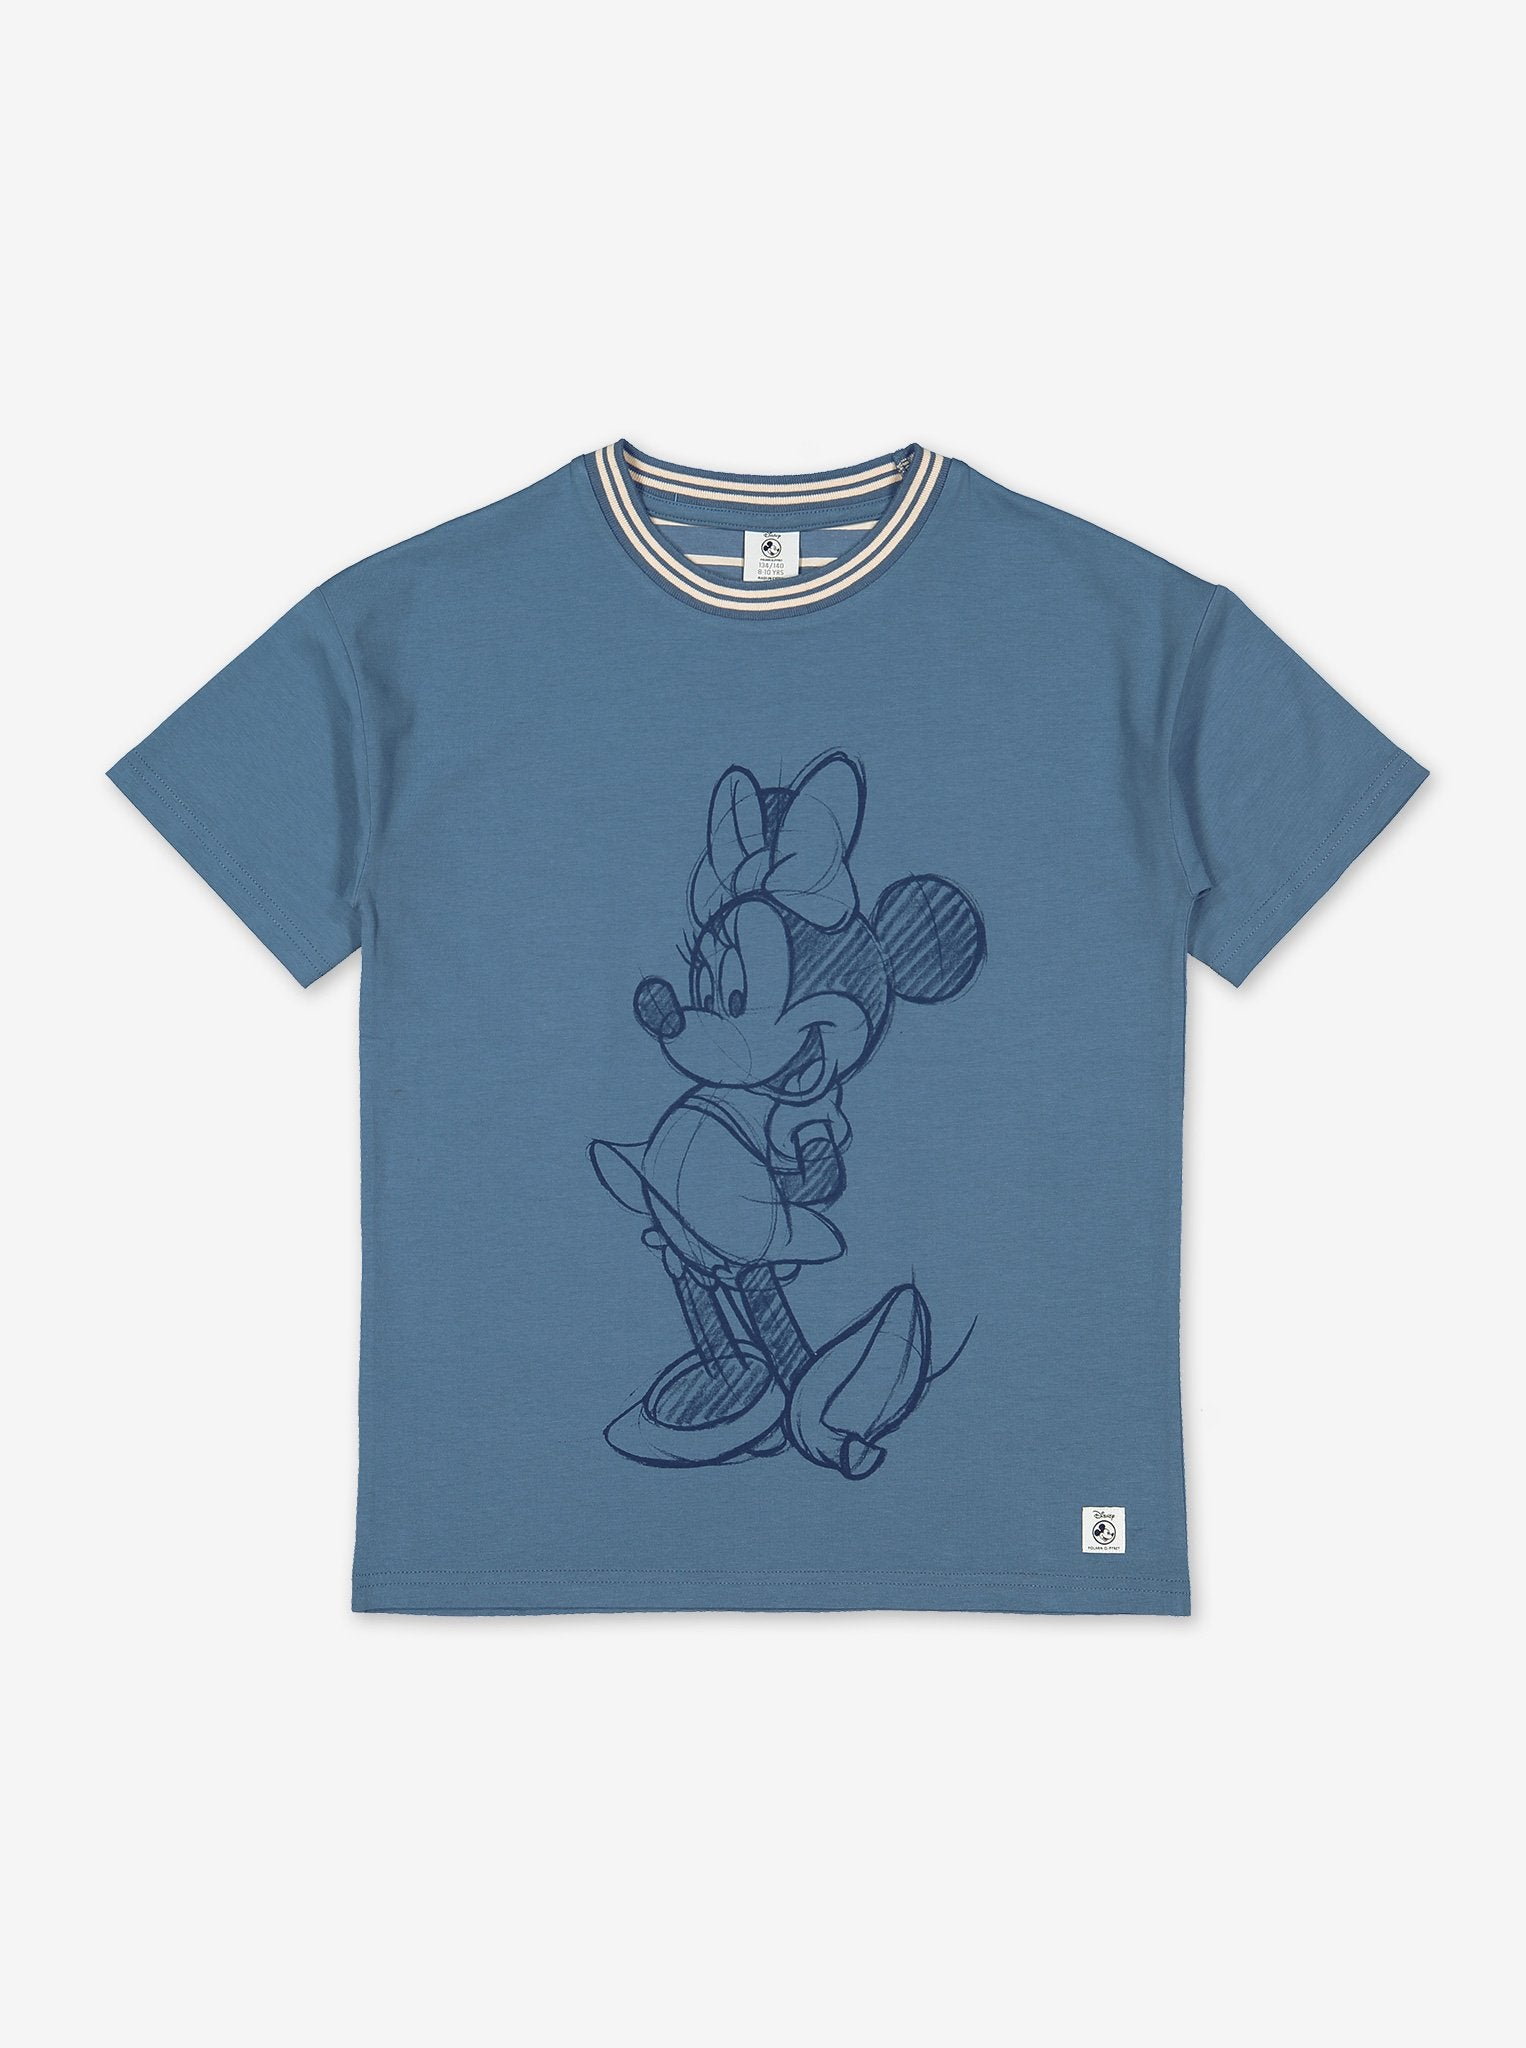 Minnie Mouse Oversized Kids T-Shirt